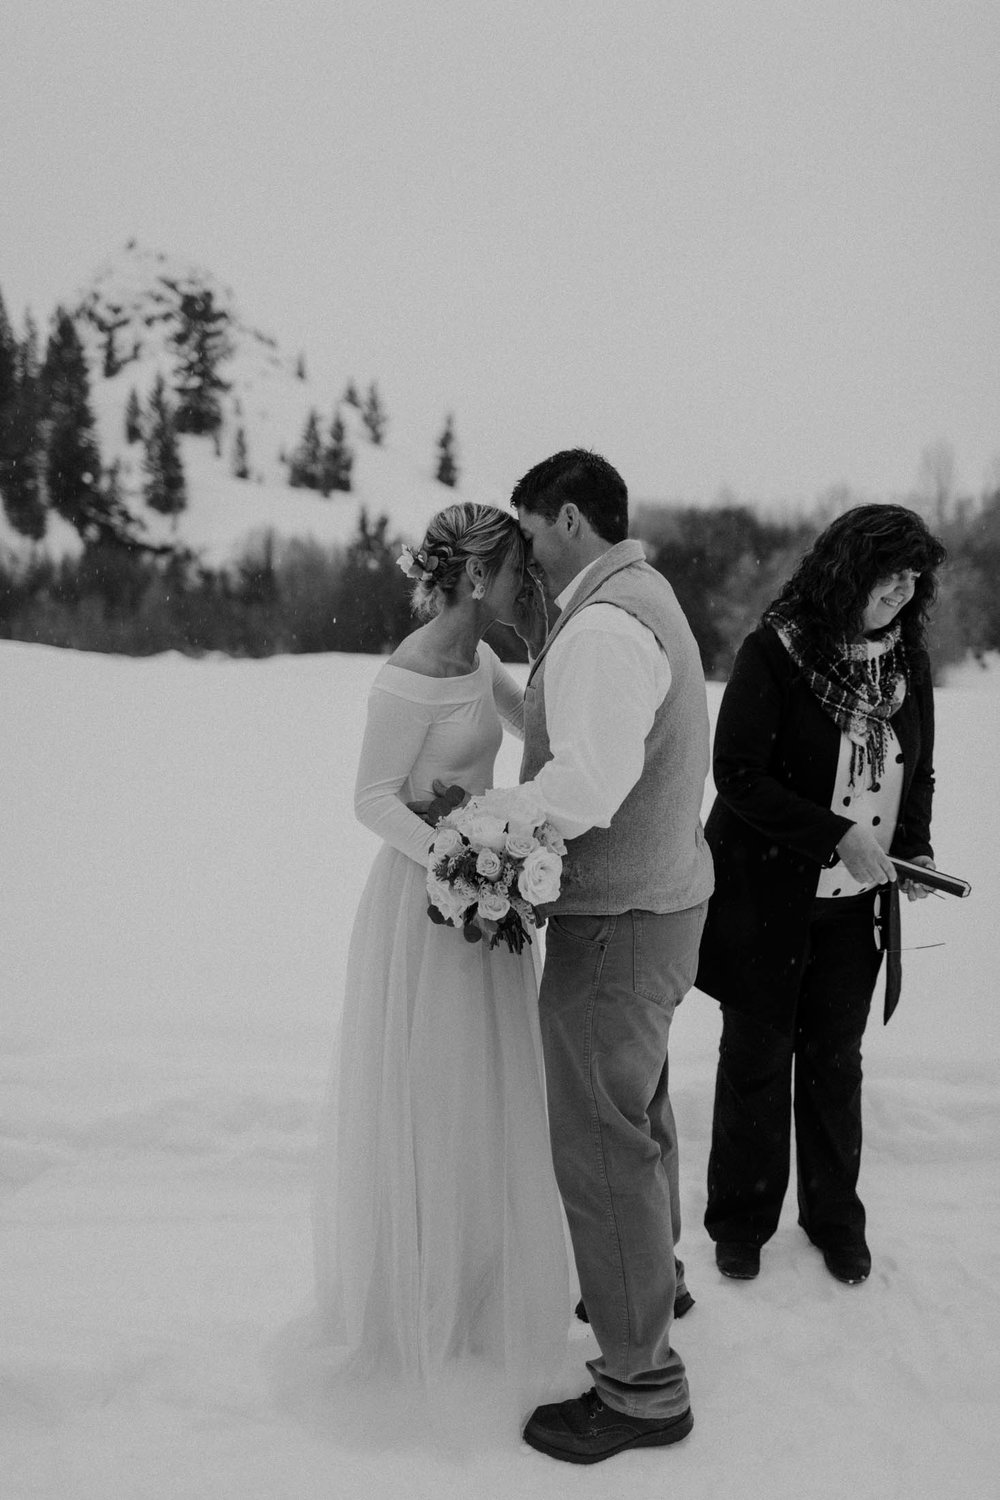 H_J_SunValley_winter_wedding-51.jpg